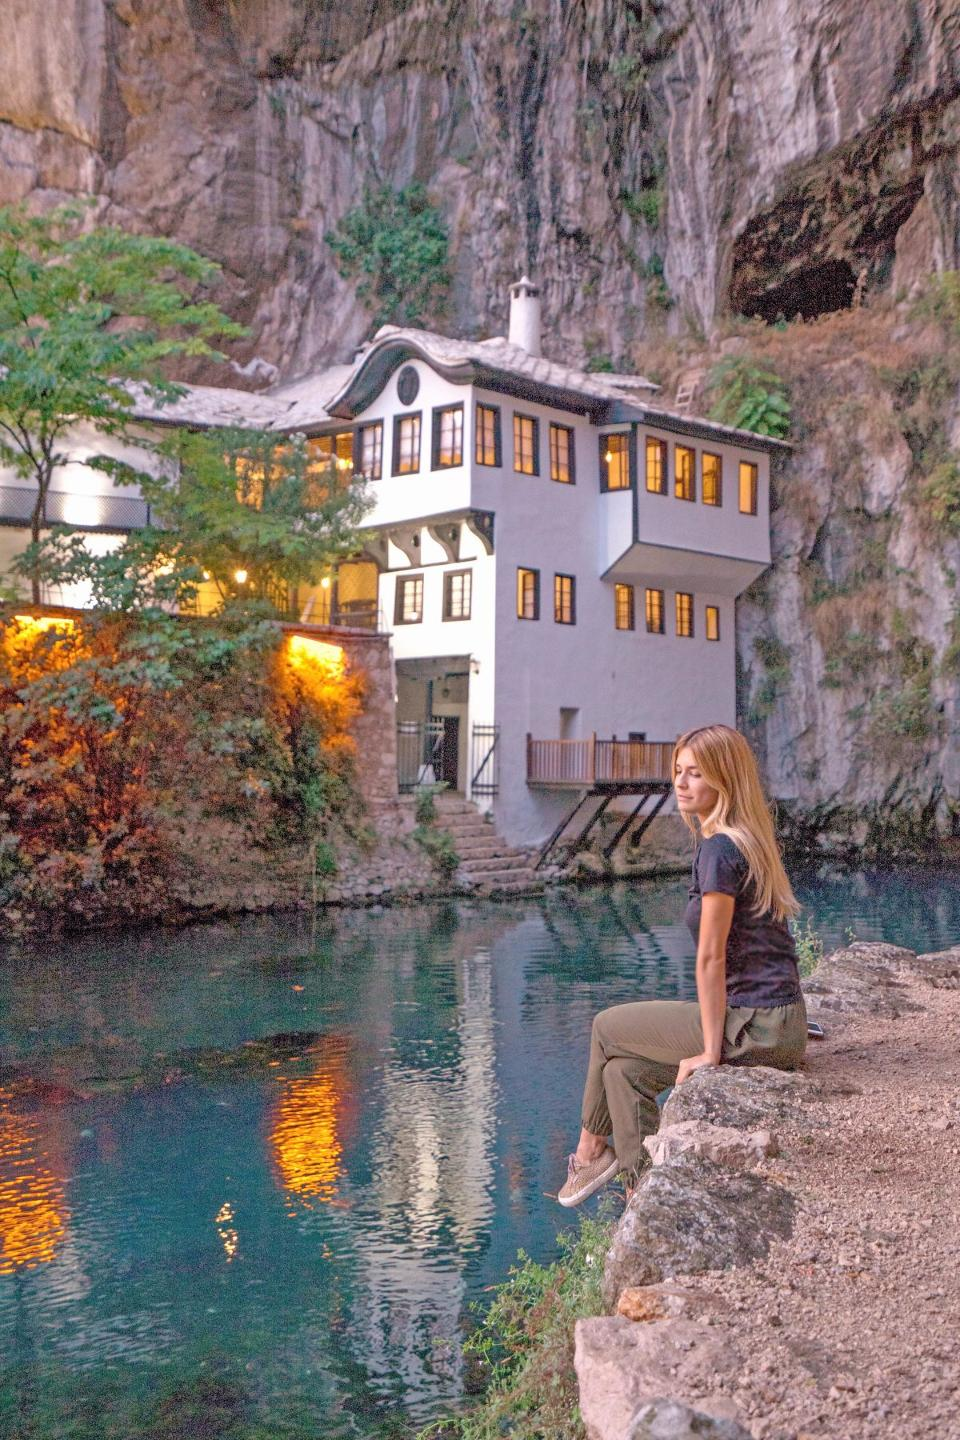 Bosnia offers European vacation style, for less. Photo credit: Hande Cilek.